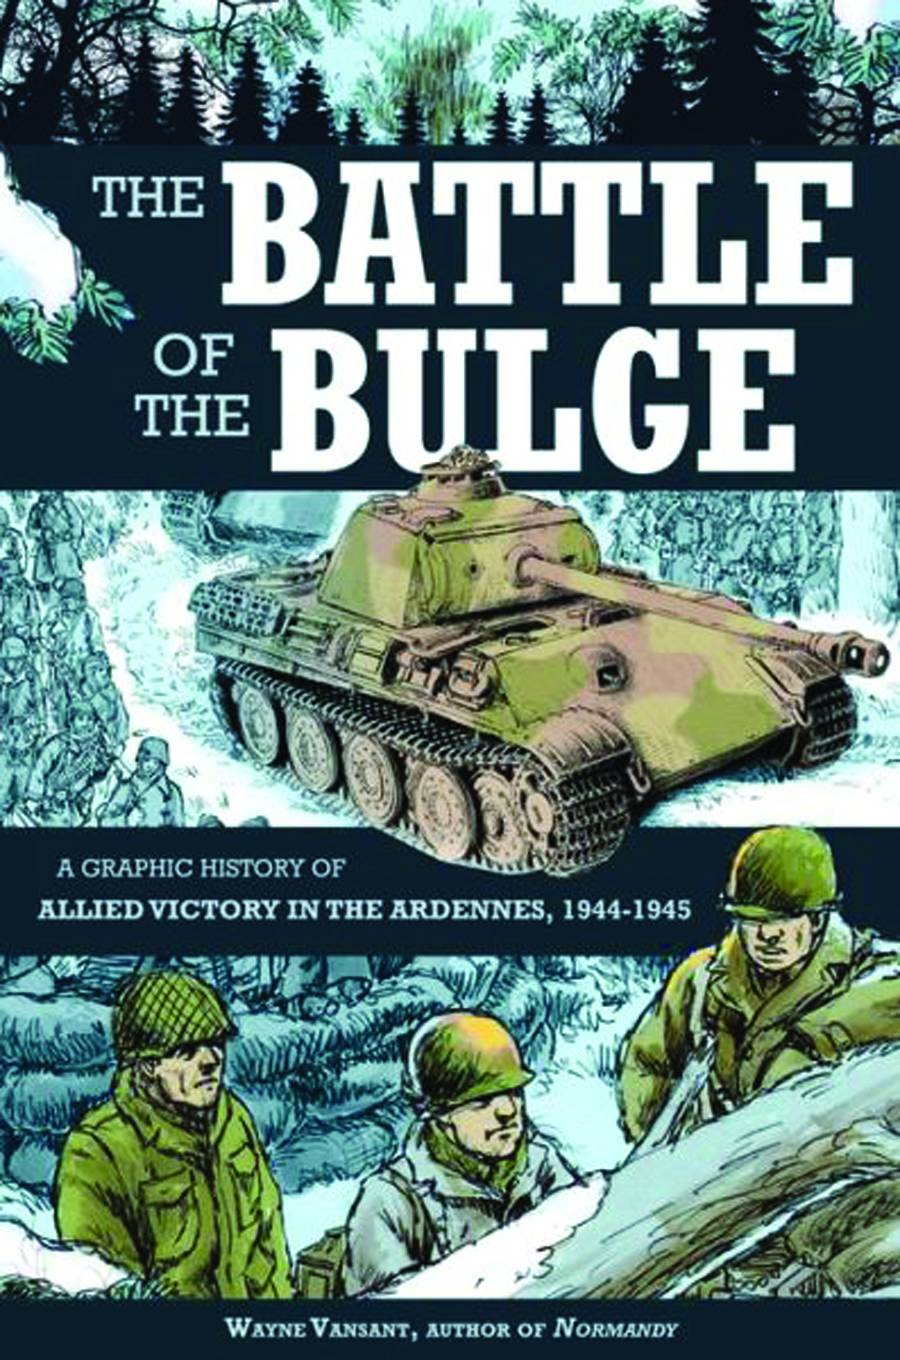 an overview of the battle of the bulge in ardennes Show larger map battle of the bulge summary hidden from allied air surveillance, the germans massed their forces to attack through the ardennes hoping to reach open ground beyond the meuse for a dash to the coast.